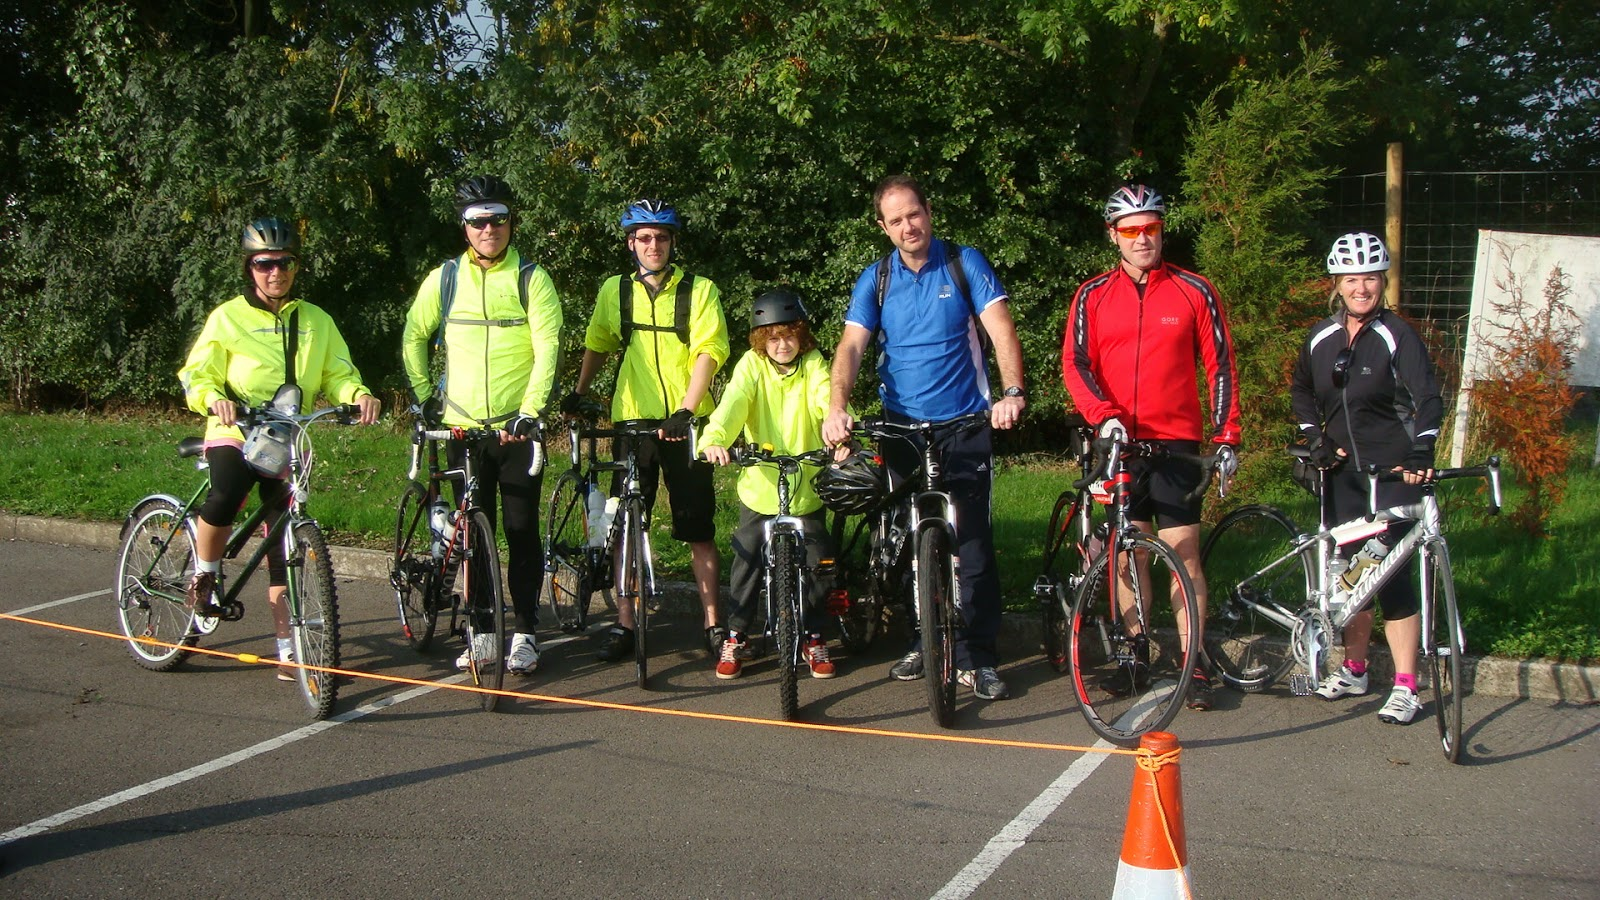 Keytek Locksmiths to take on Glastonbury Bike Ride